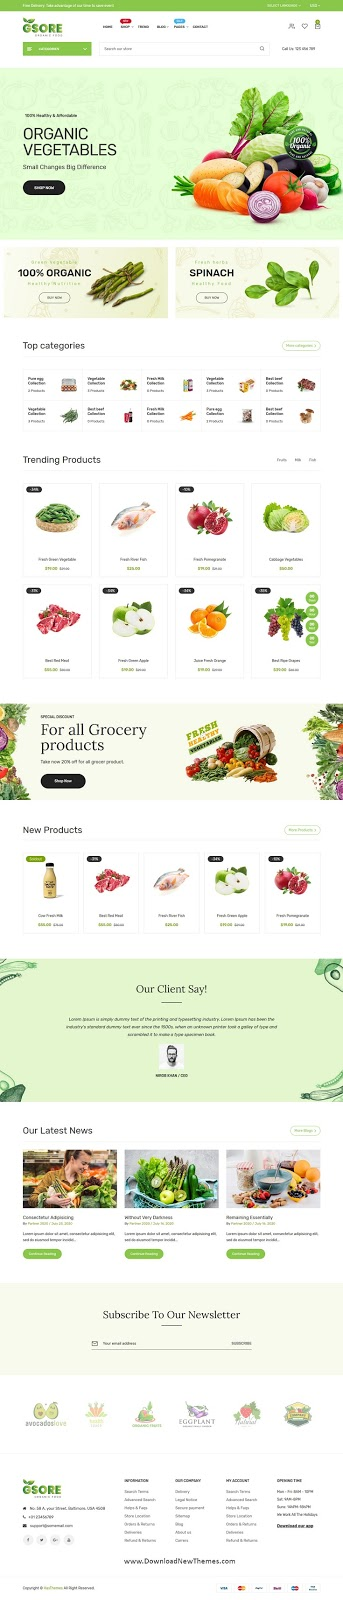 Best Grocery and Organic Food Shop Website Theme